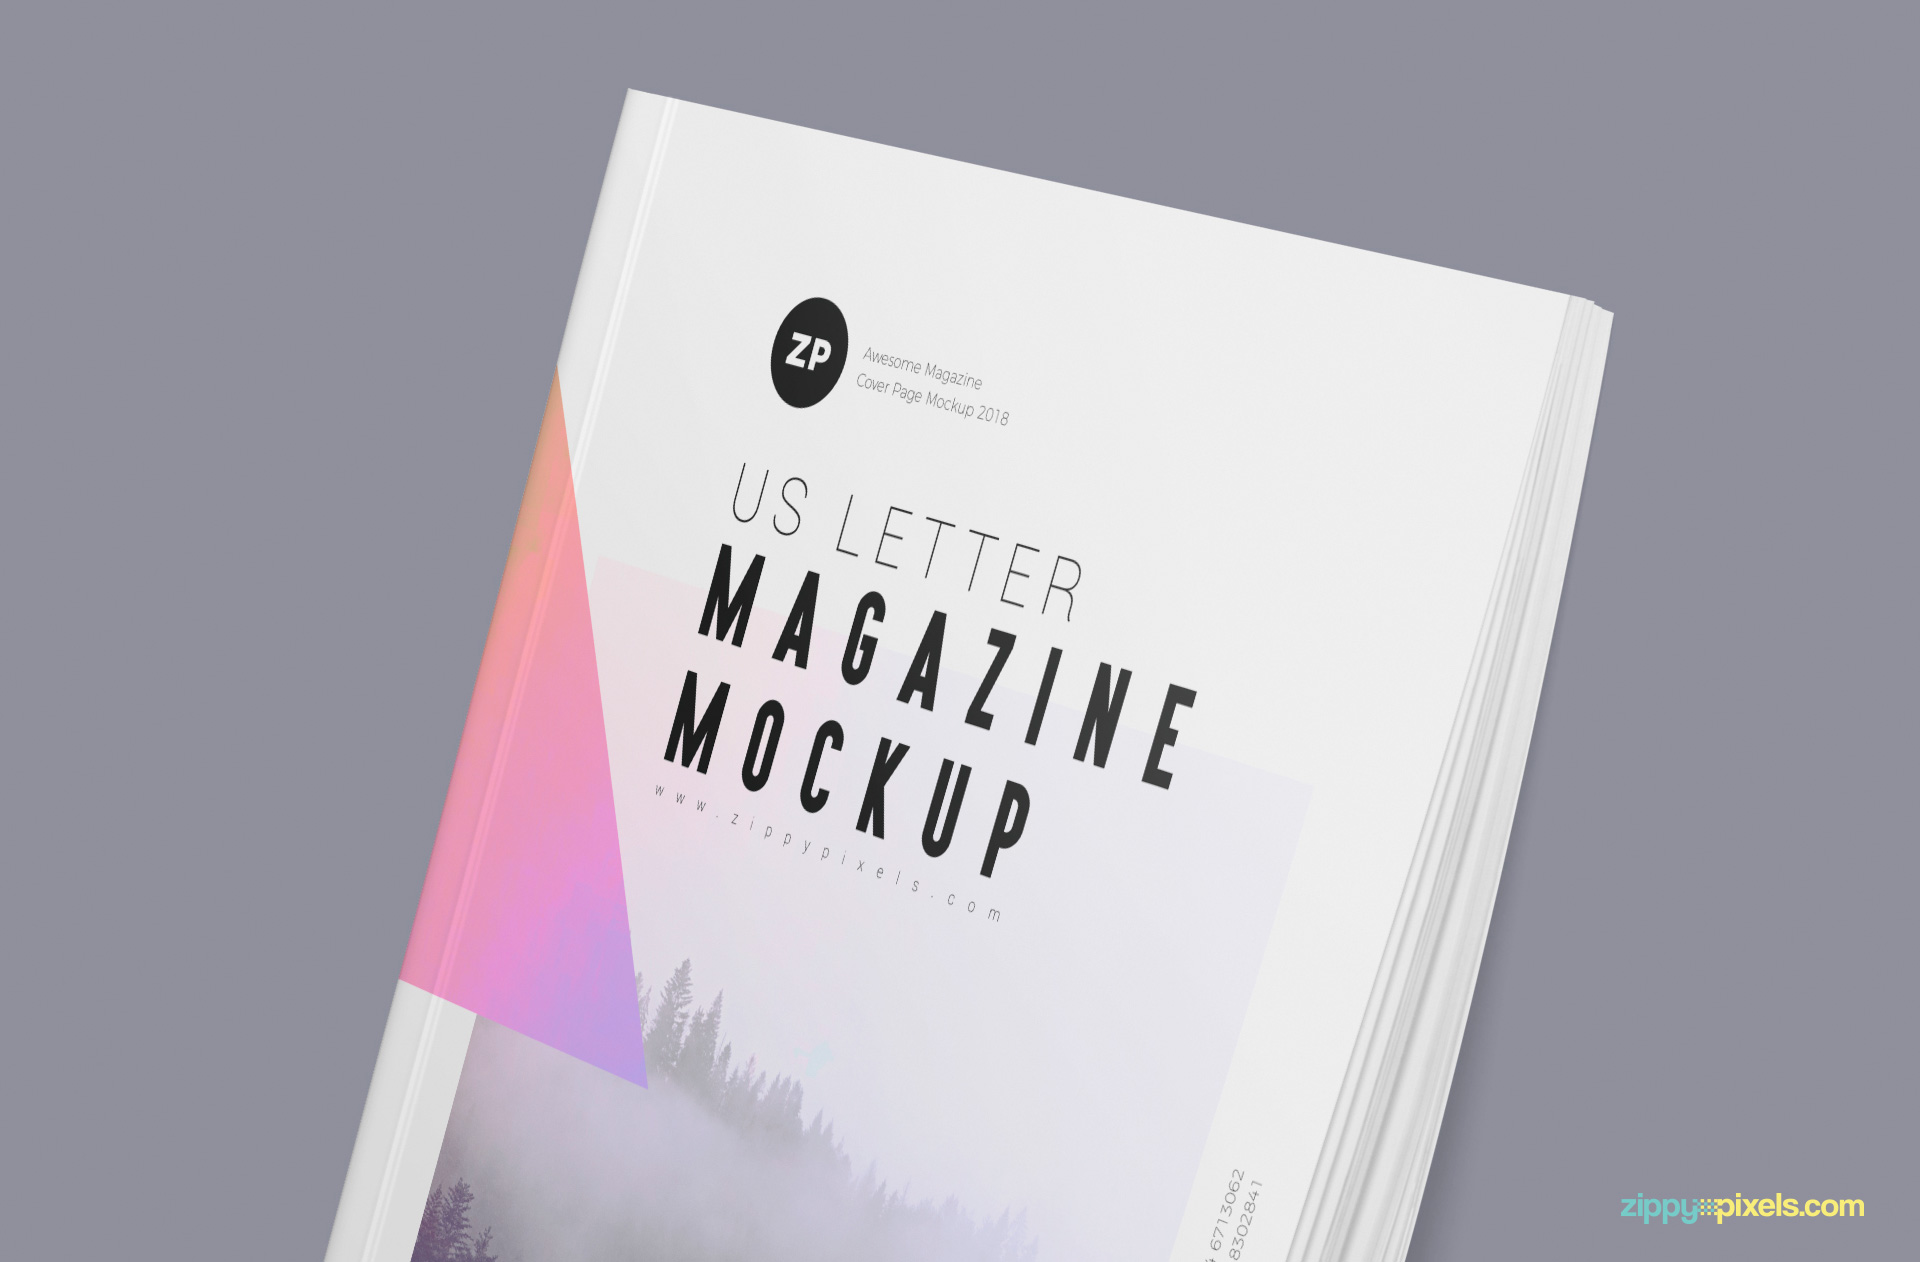 A clear and close view of magazine mockup that helps in presenting magazine designs.